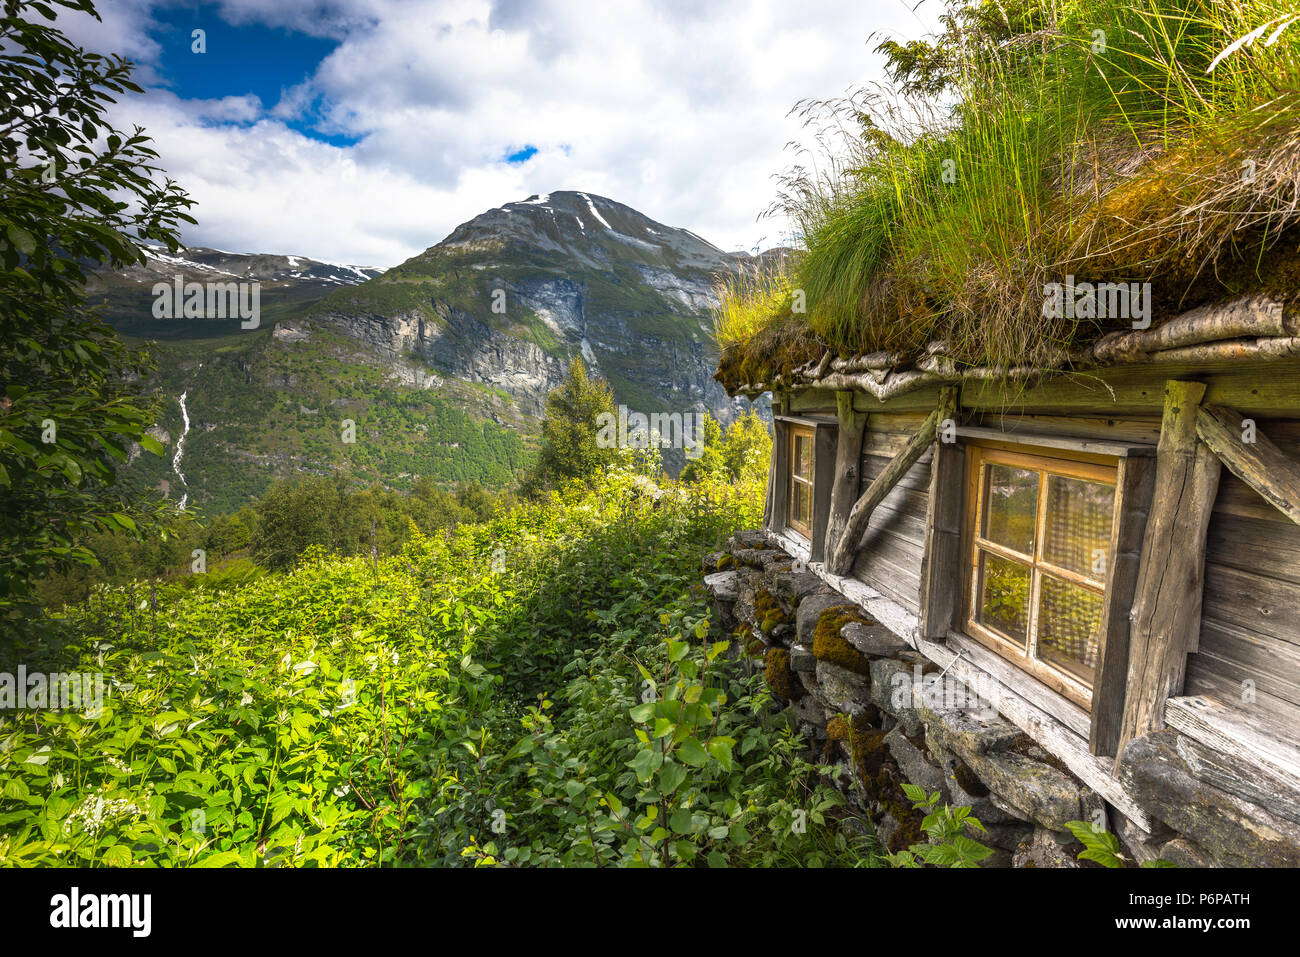 ancient alp huts of Homlongsetra, Norway, alpine huts of former mountain farmers - Stock Image